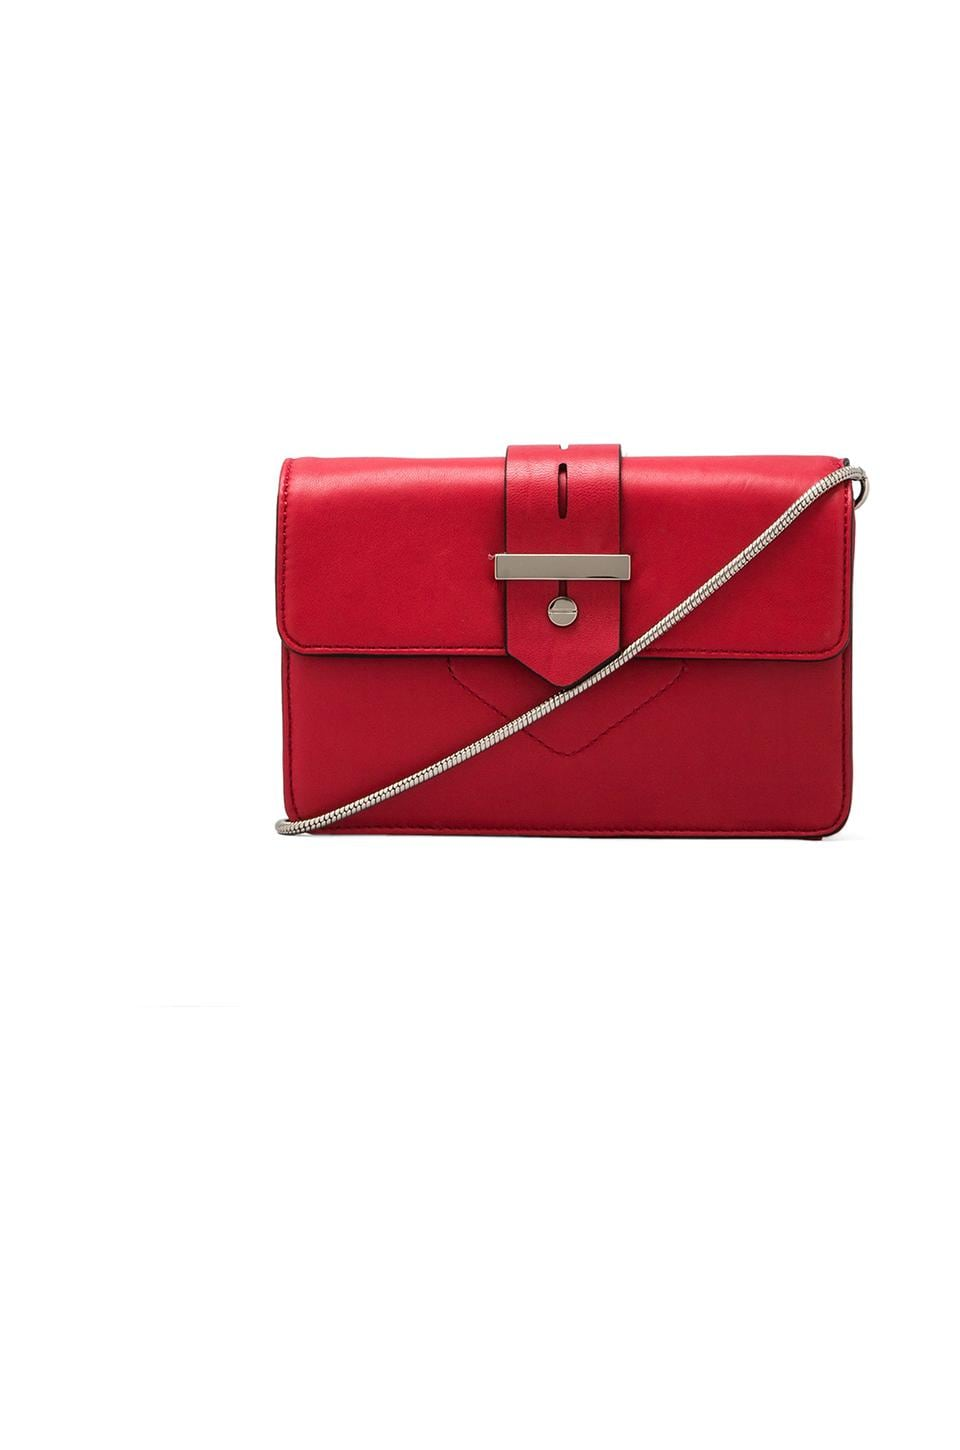 MILLY Bradley Collection Mini Bag in Red